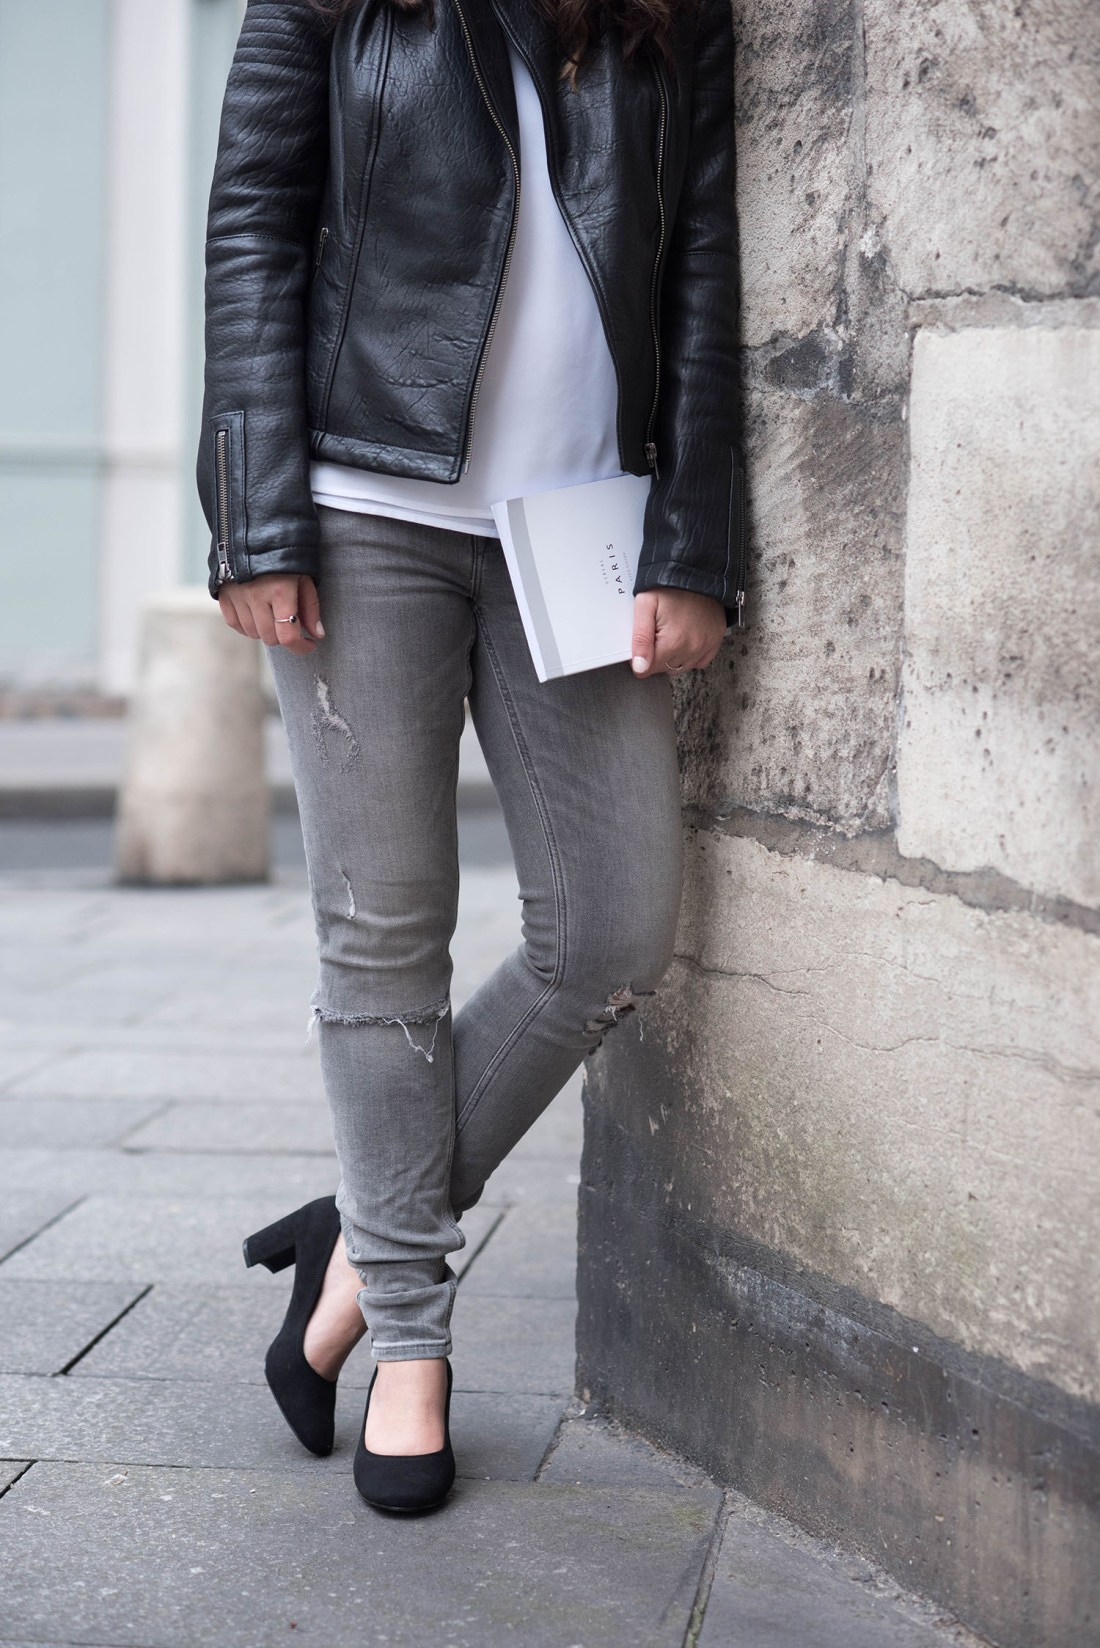 Details on lifestyle blogger Cee Fardoe of Coco & Vera, including H&M block heels and grey Zara jeans